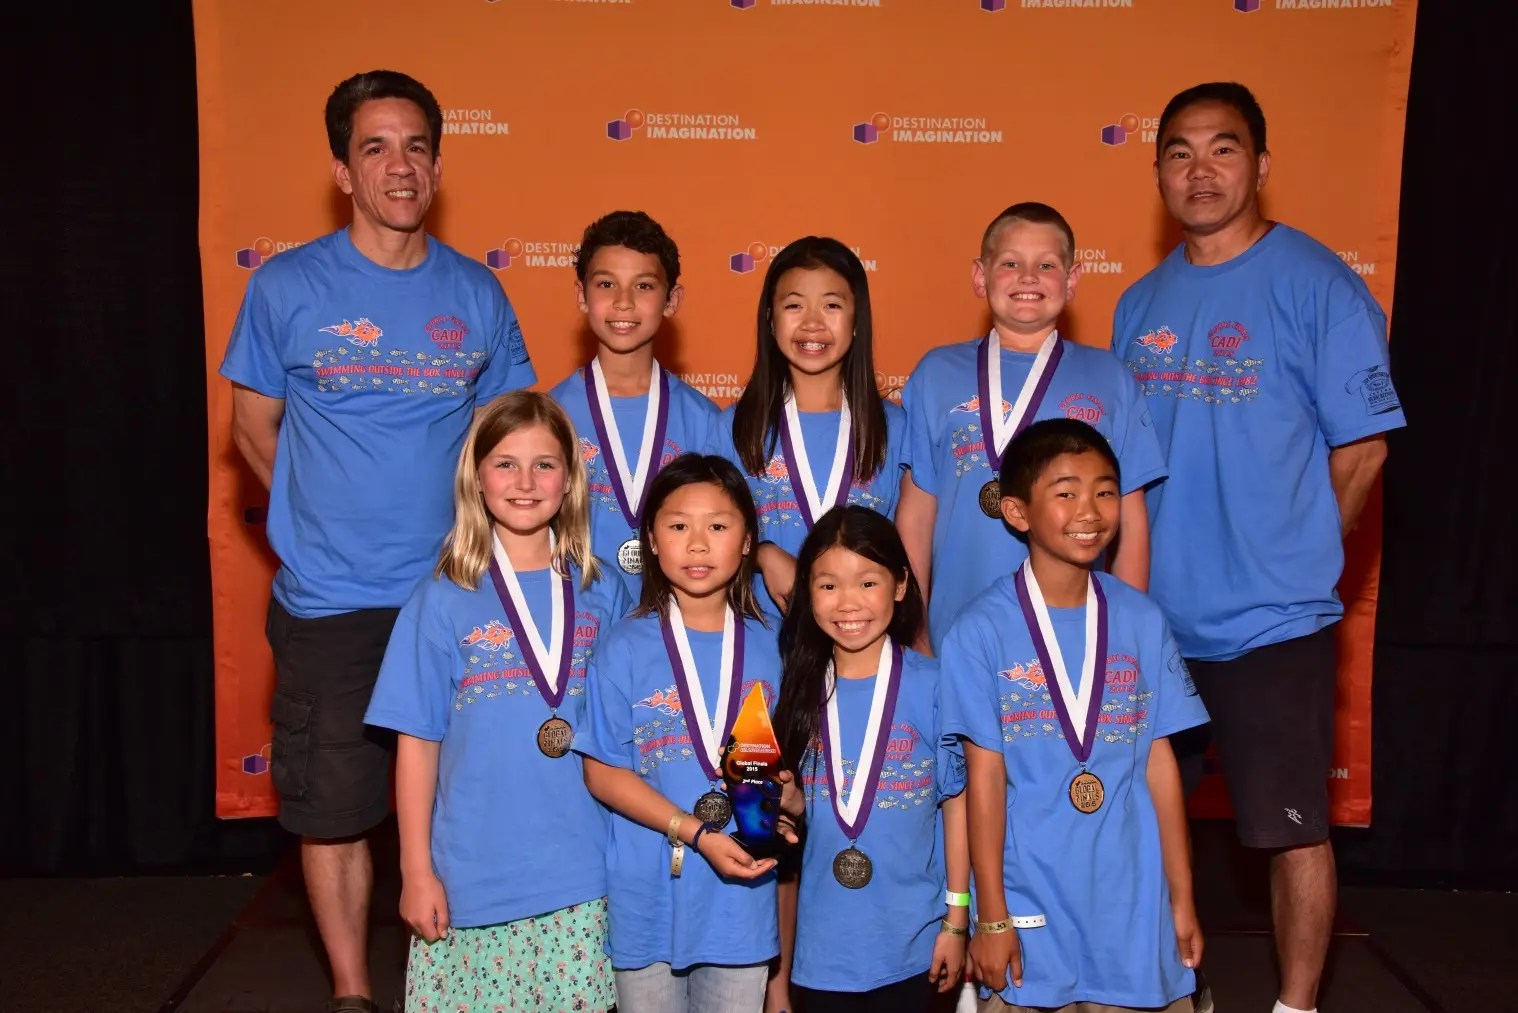 Amelia Earhart Elementary School Students Place 2nd In